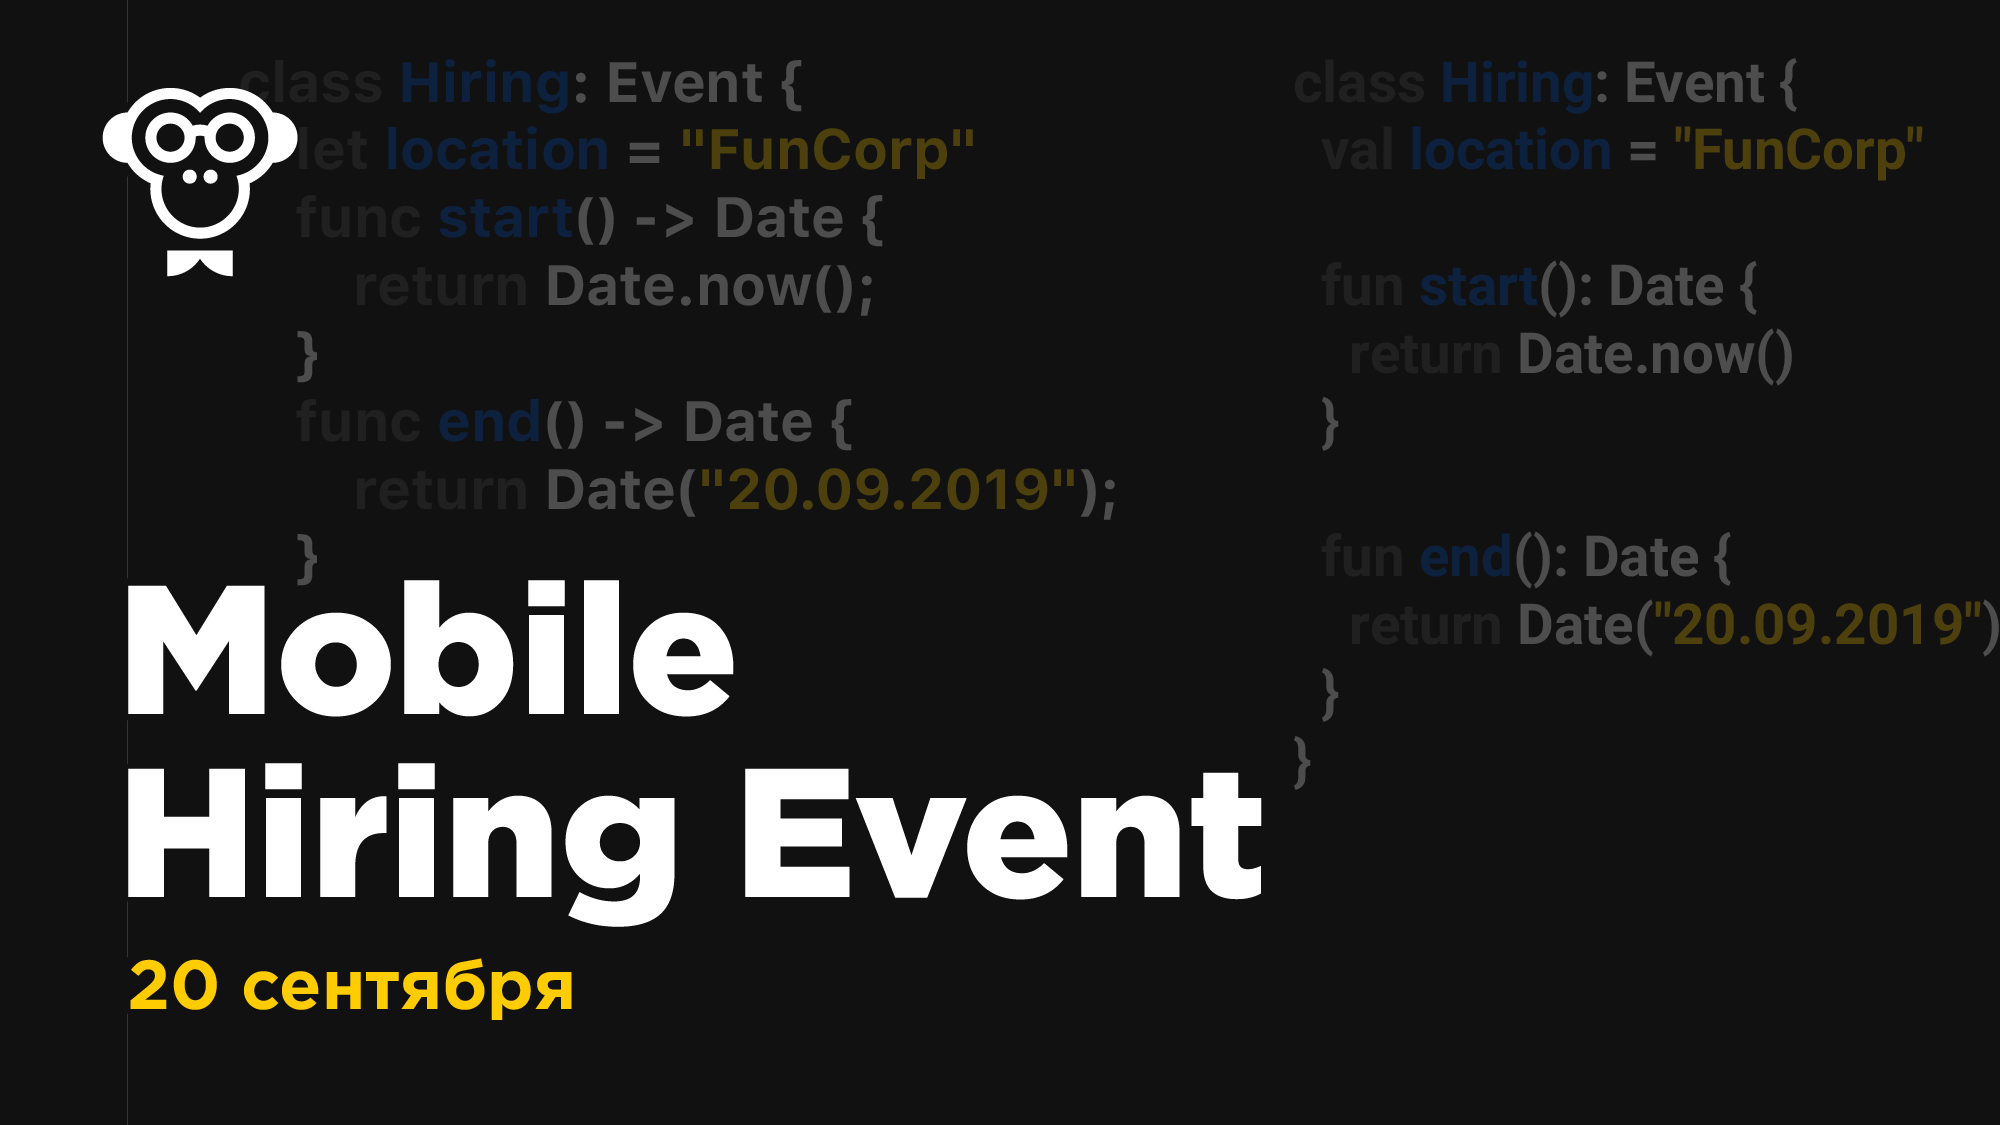 FunCorp Mobile Hiring Event